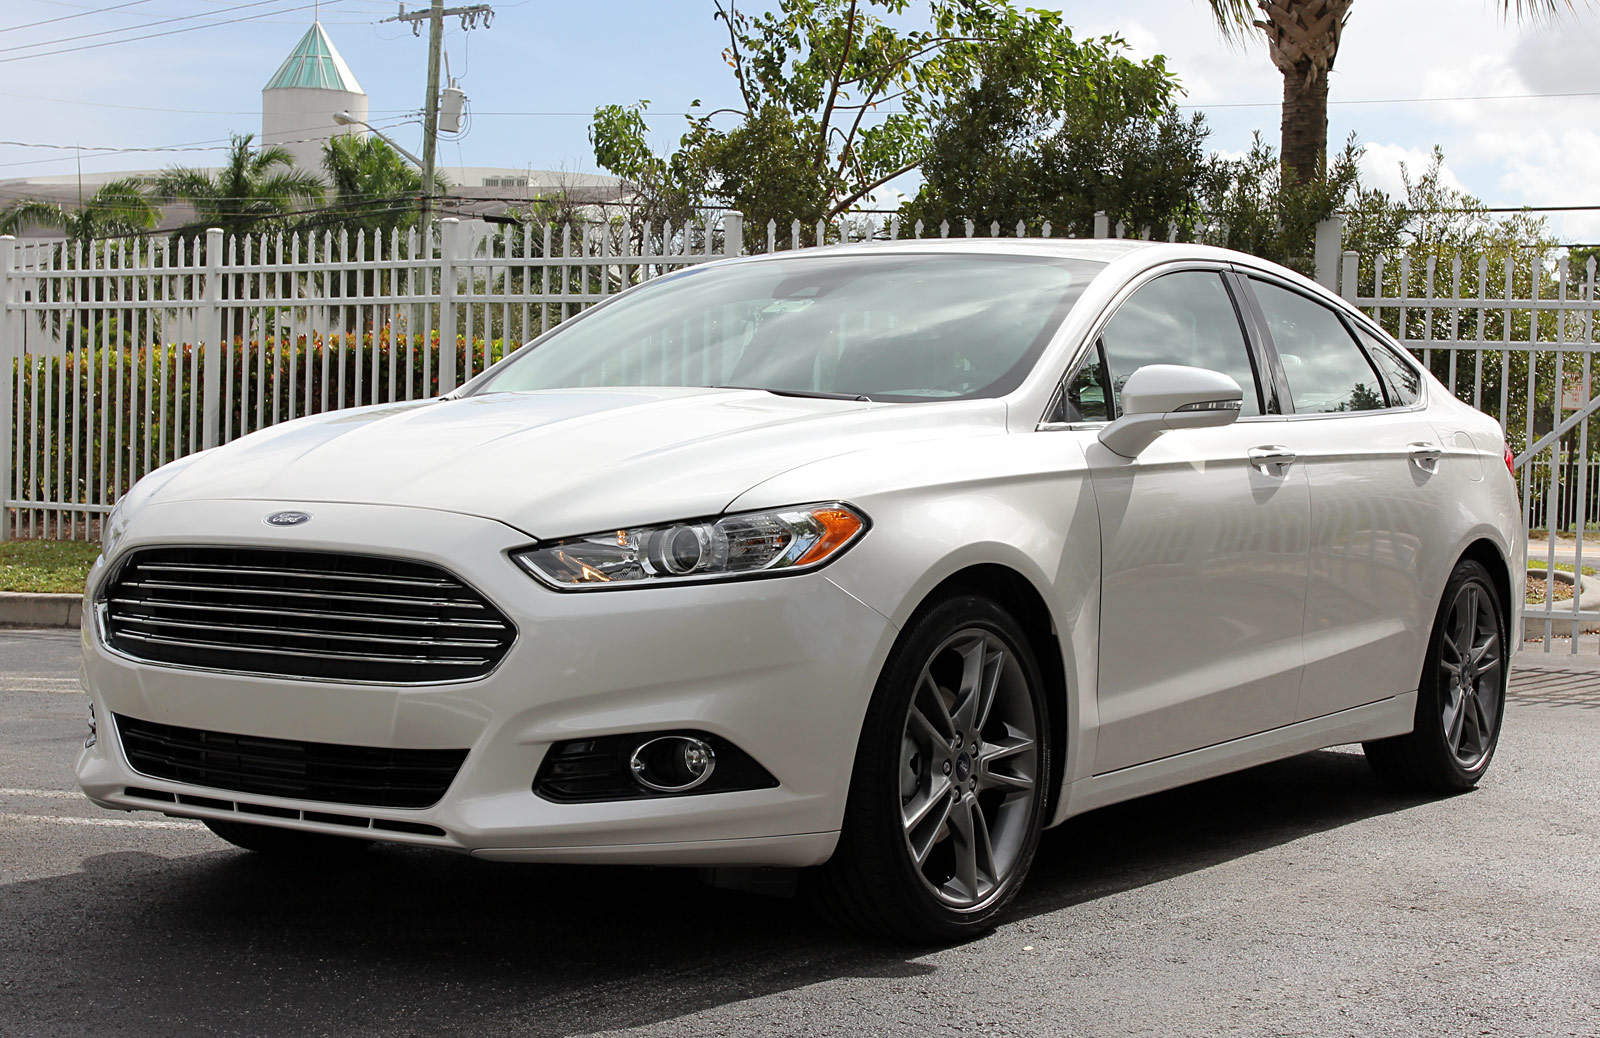 2013 ford fusion information and photos momentcar. Black Bedroom Furniture Sets. Home Design Ideas